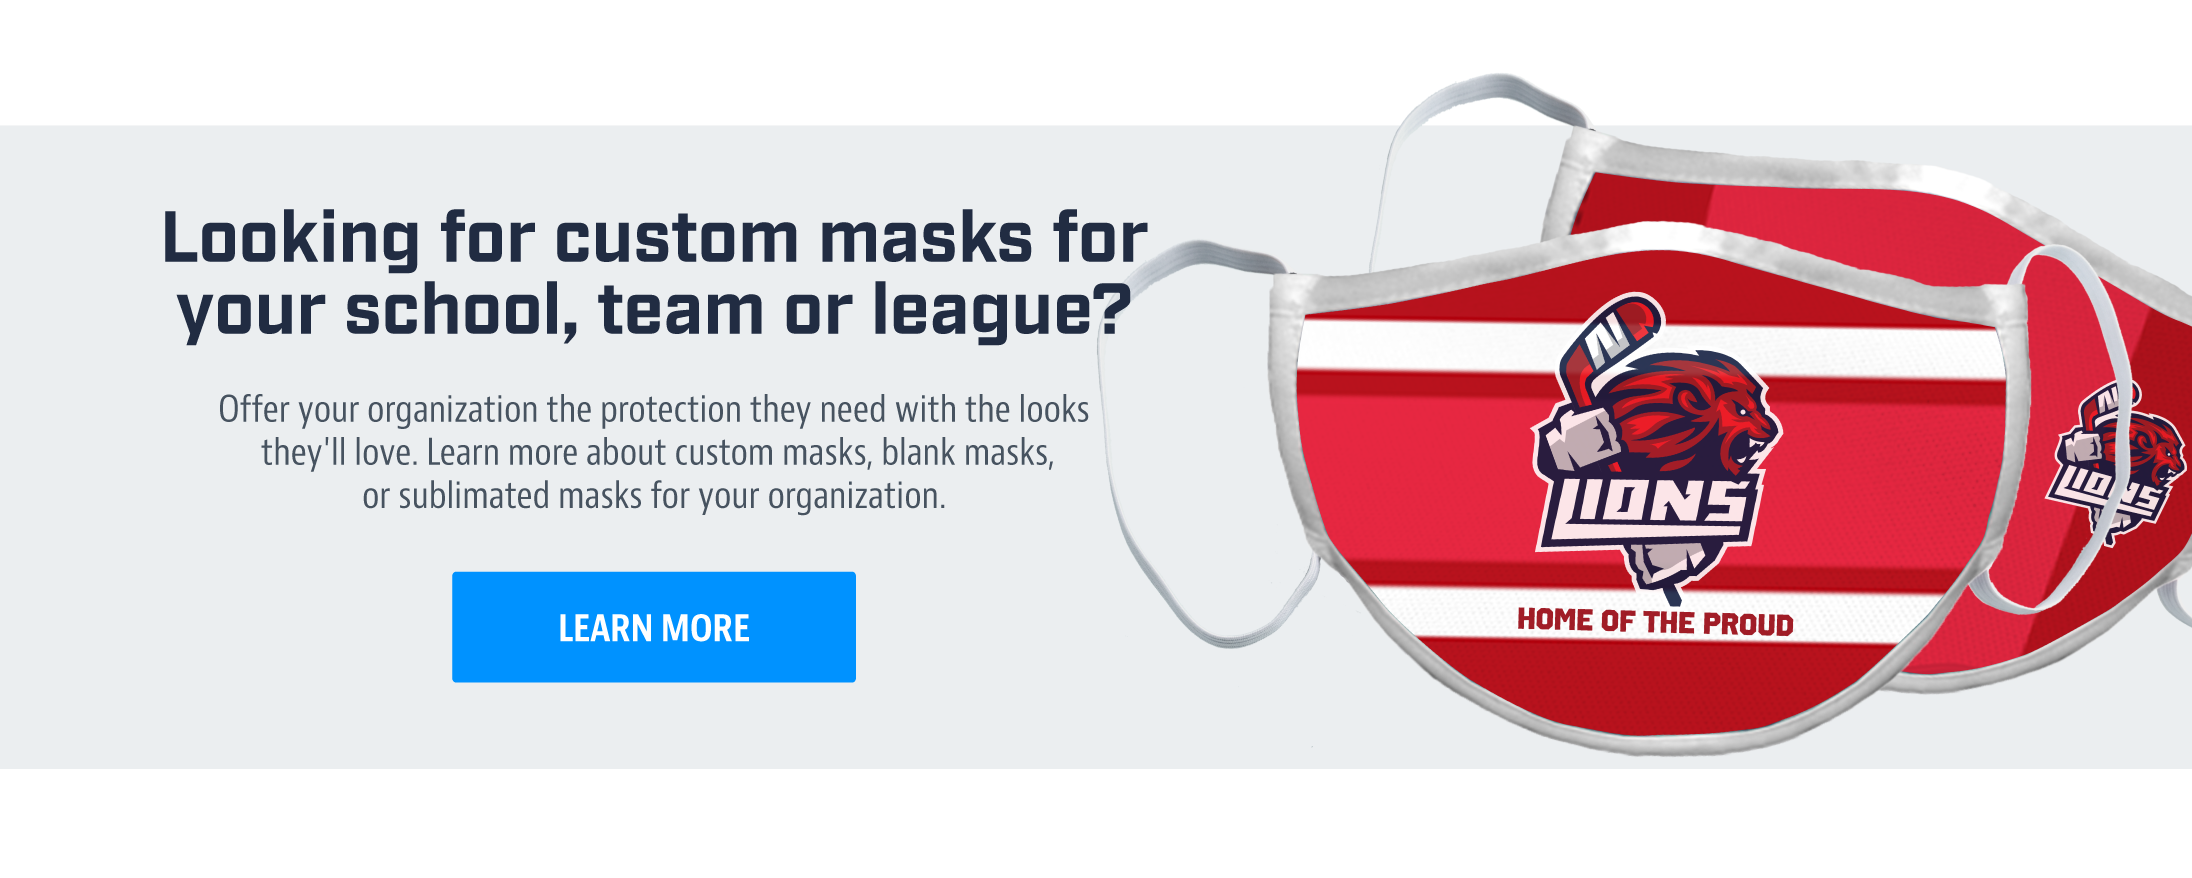 Looking for custom masks for your school, team or league? Learn More